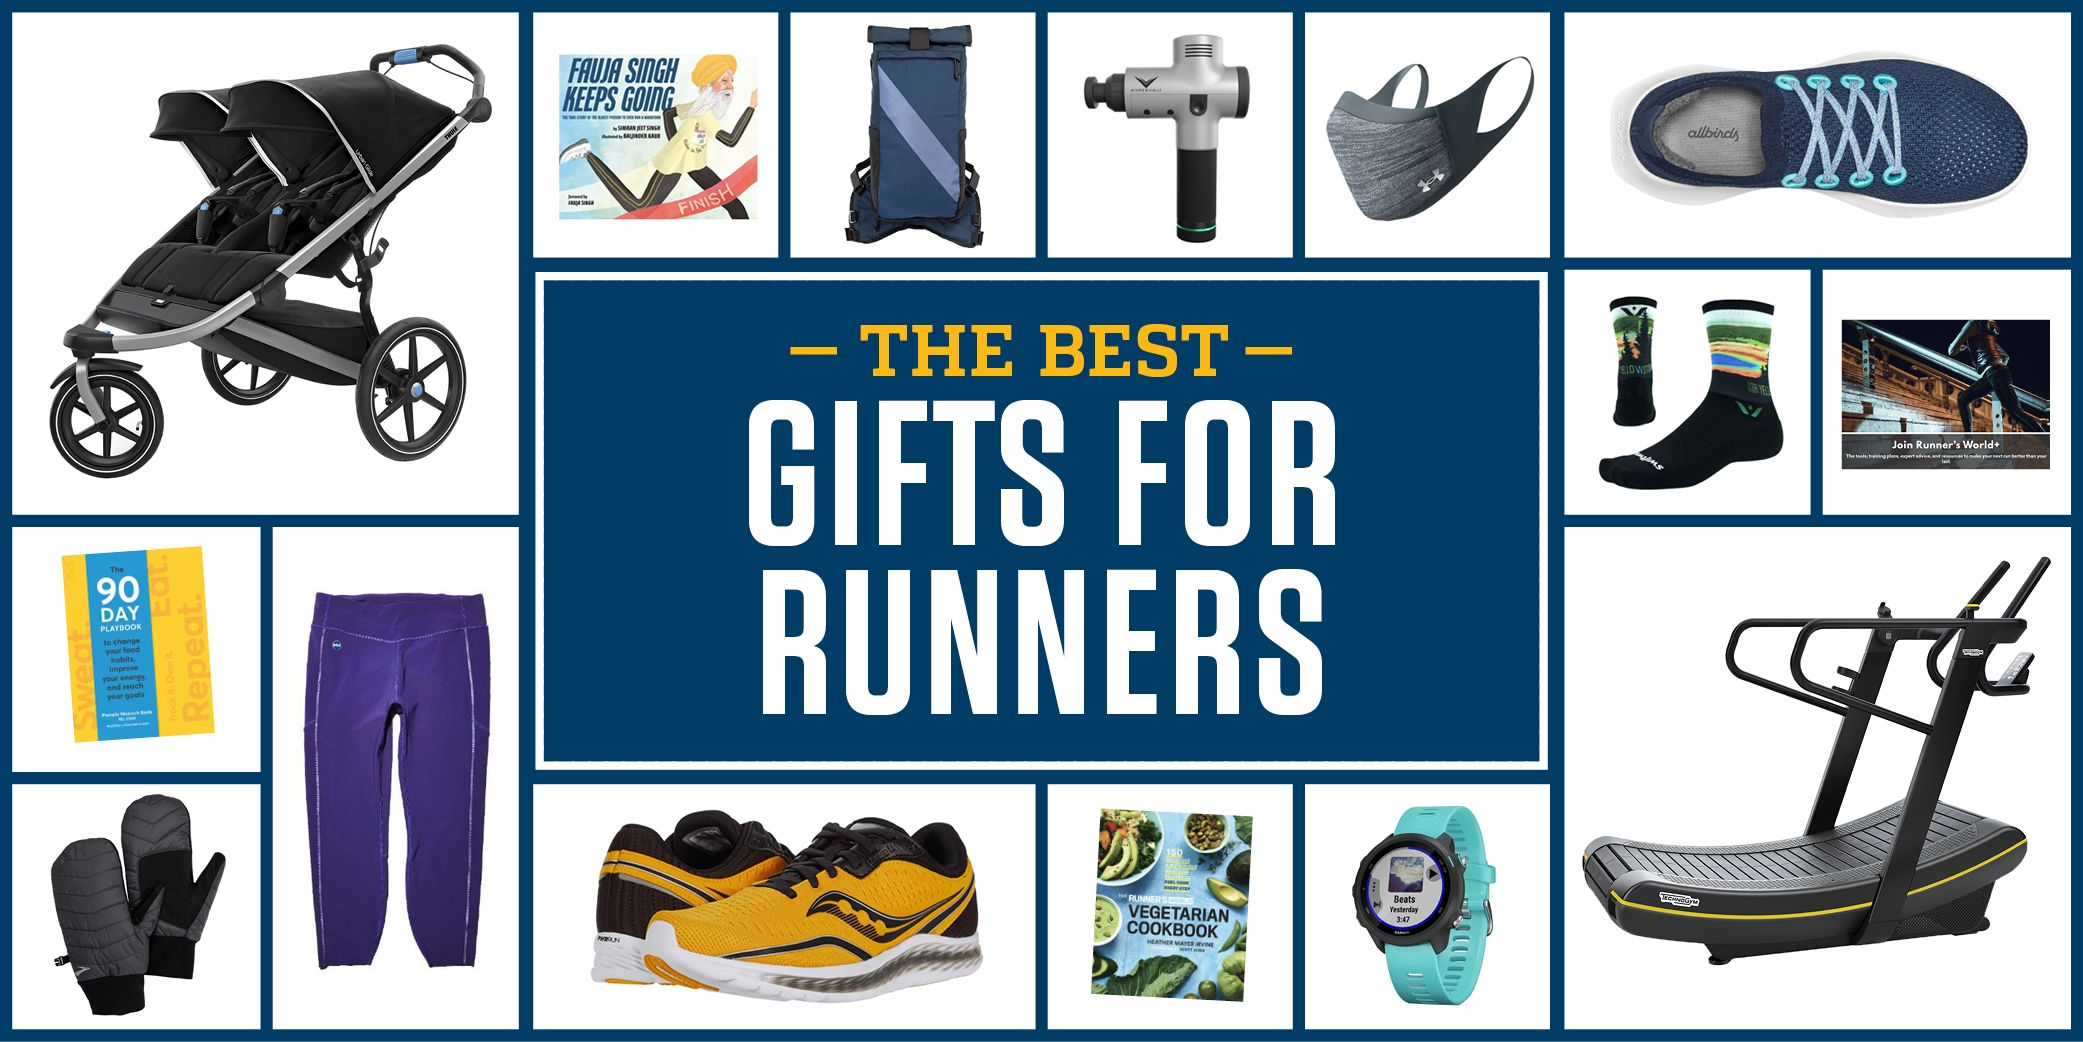 The Best Gifts for Runners